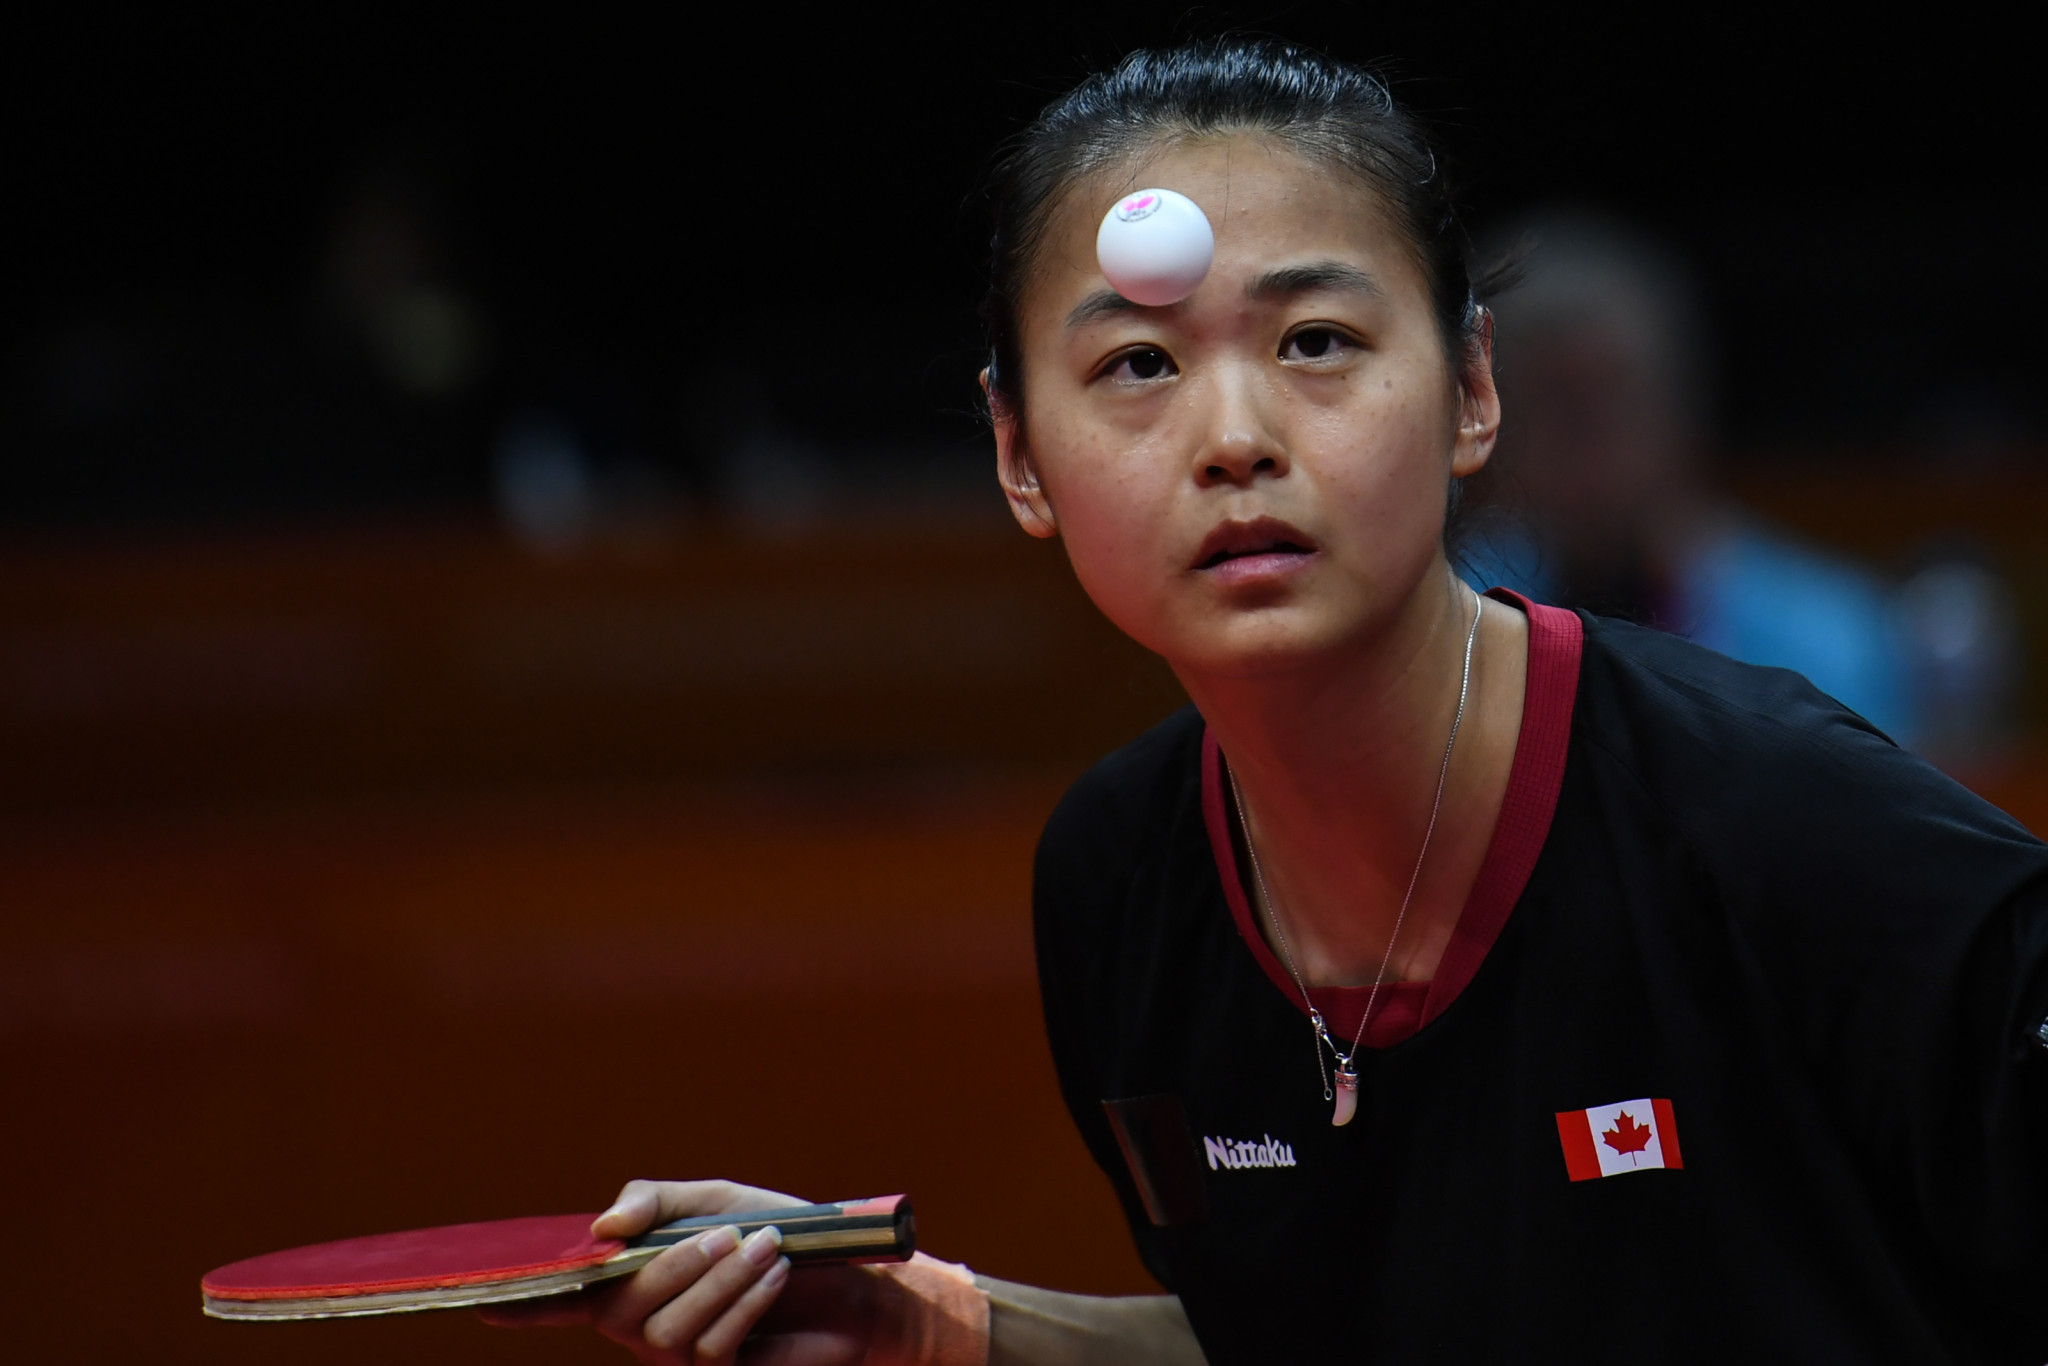 Canada's Mo Zhang made the women's final for the second straight year ©Getty Images